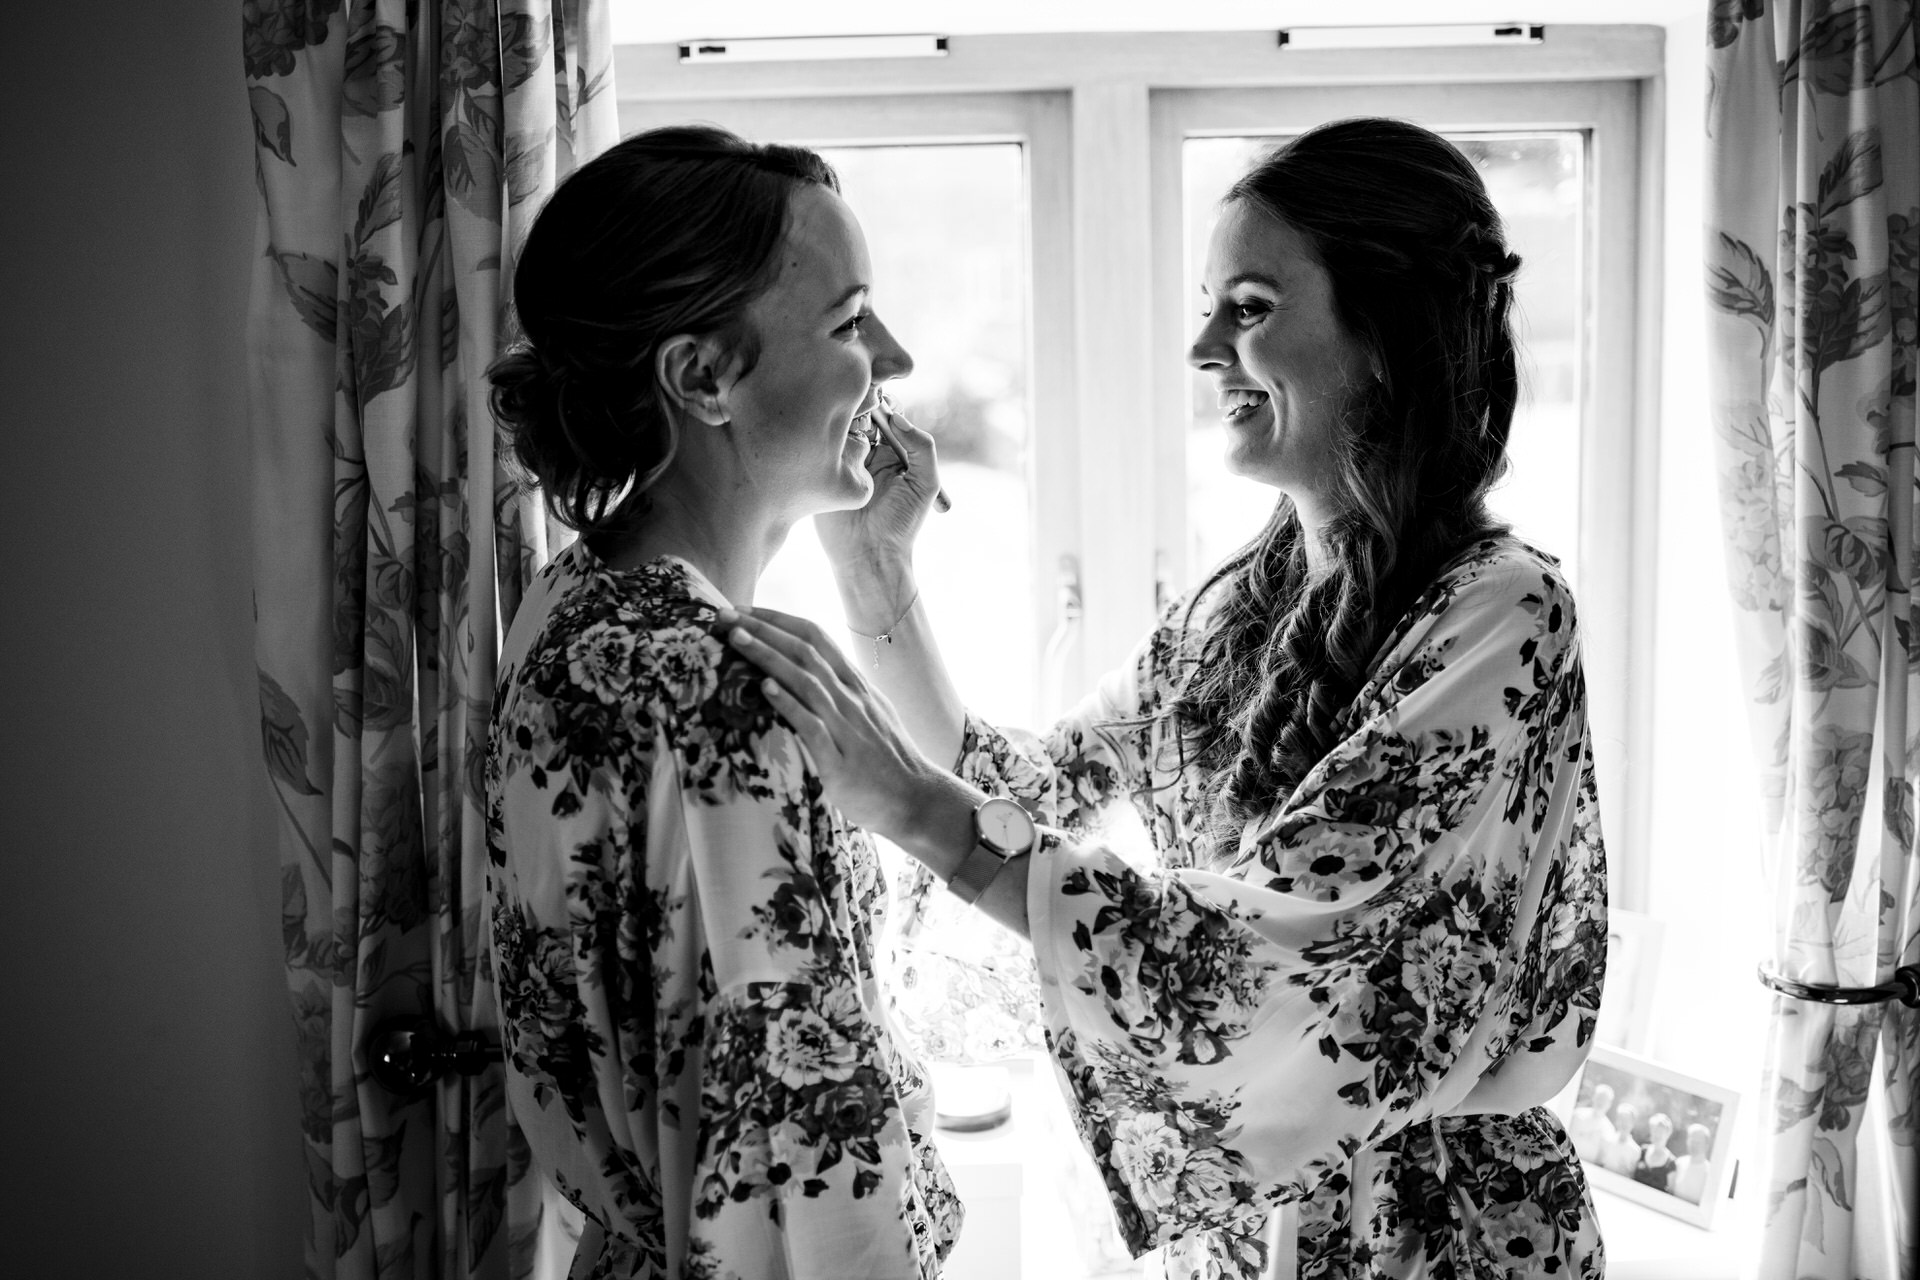 Pennard house somerset wedding photographer 1